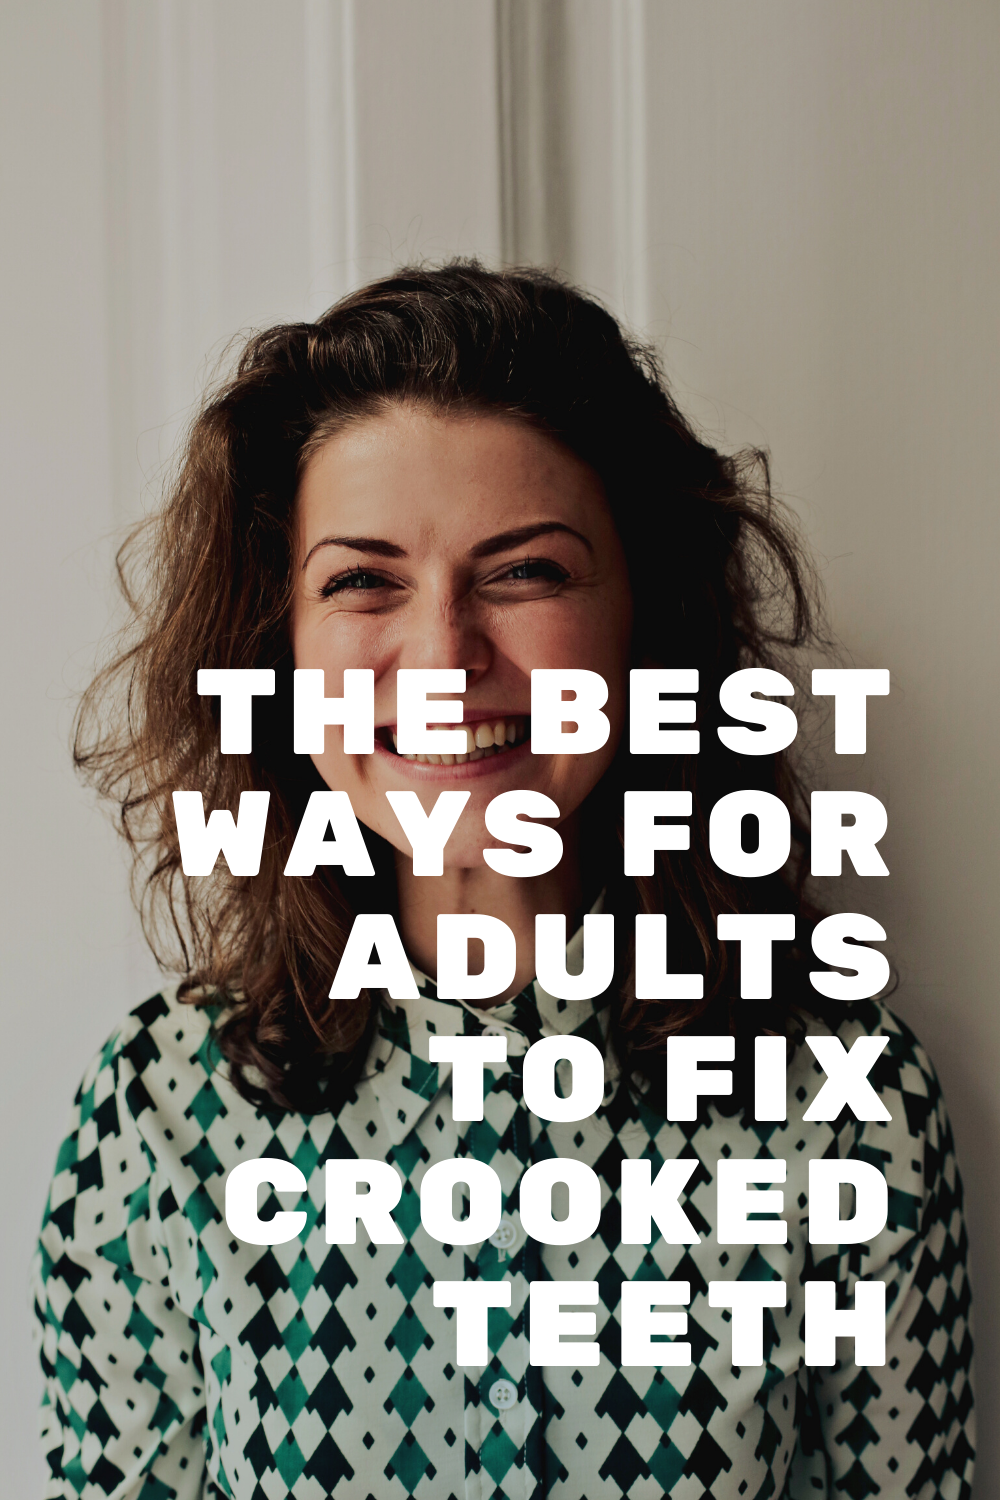 The Best Ways for Adults to Straighten Their Smile